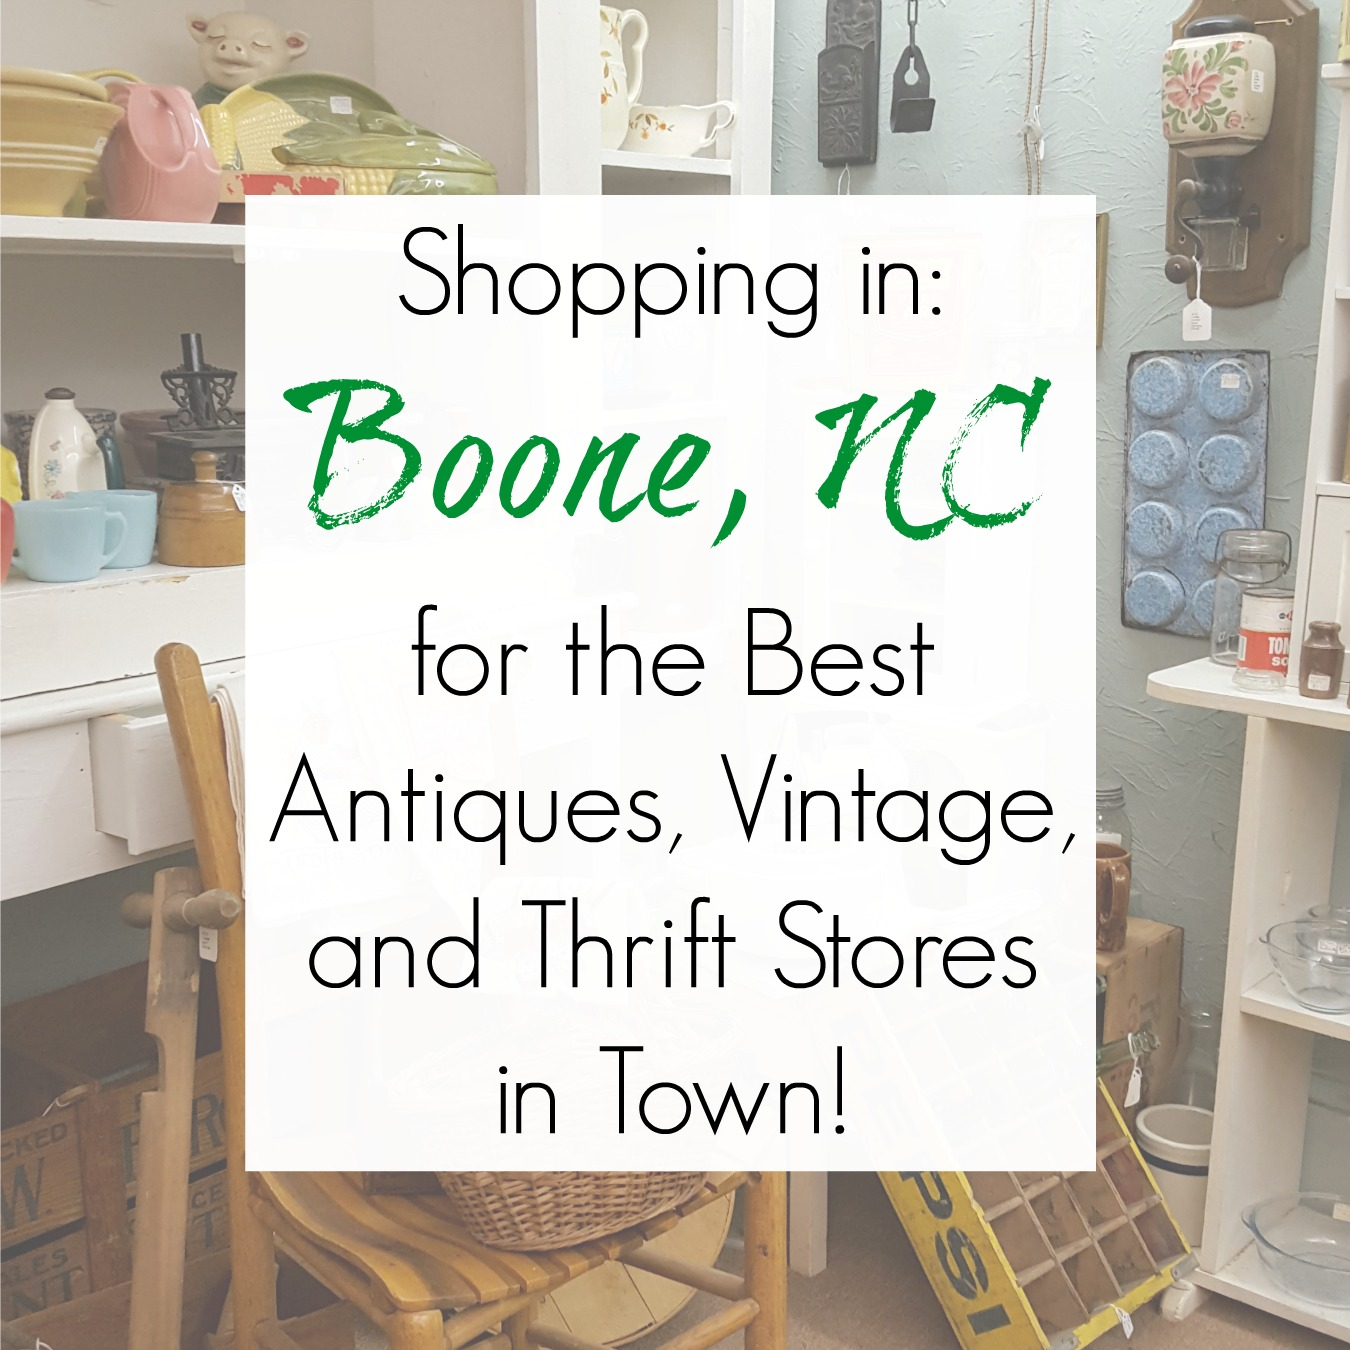 Shopping in Boone, NC: Best Antiques, Vintage, and Thrift Stores